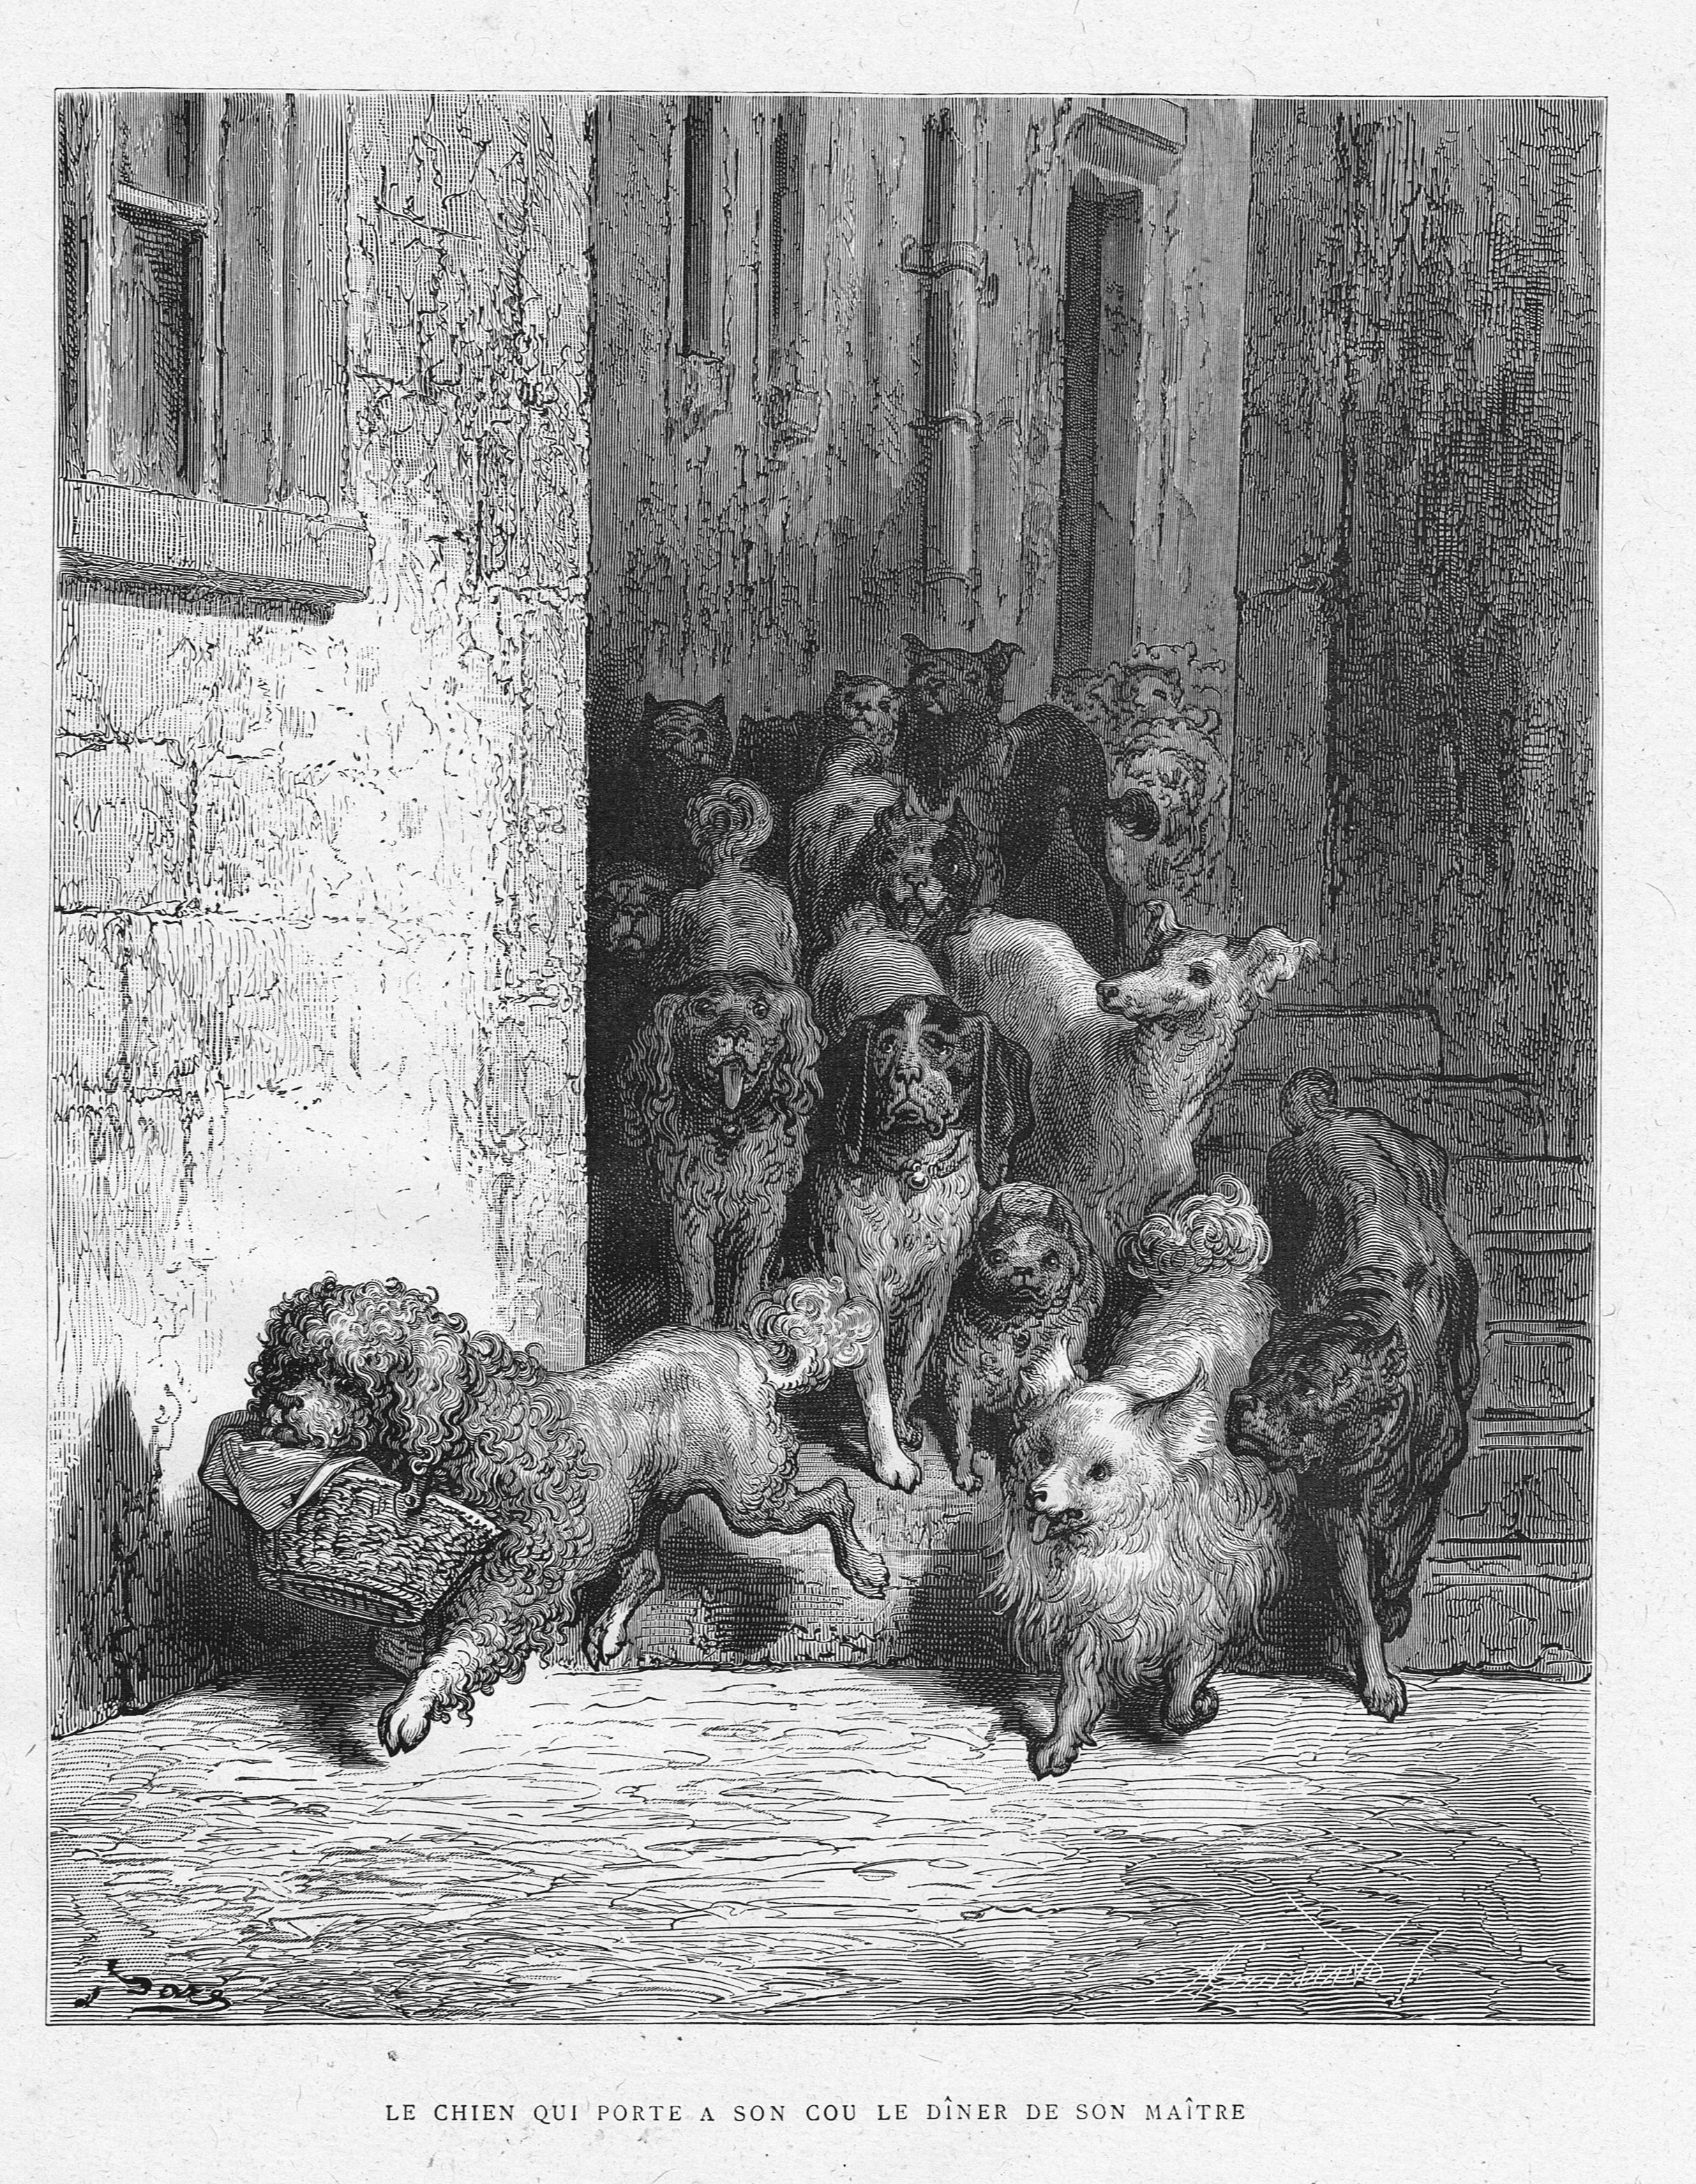 Le Chien Qui Porte A Son Cou Le Diner De Son Maitre By Gustave Dore From The Book Les Fables De La Fontaine By Jean De La Fontai Gustave Dore Painting